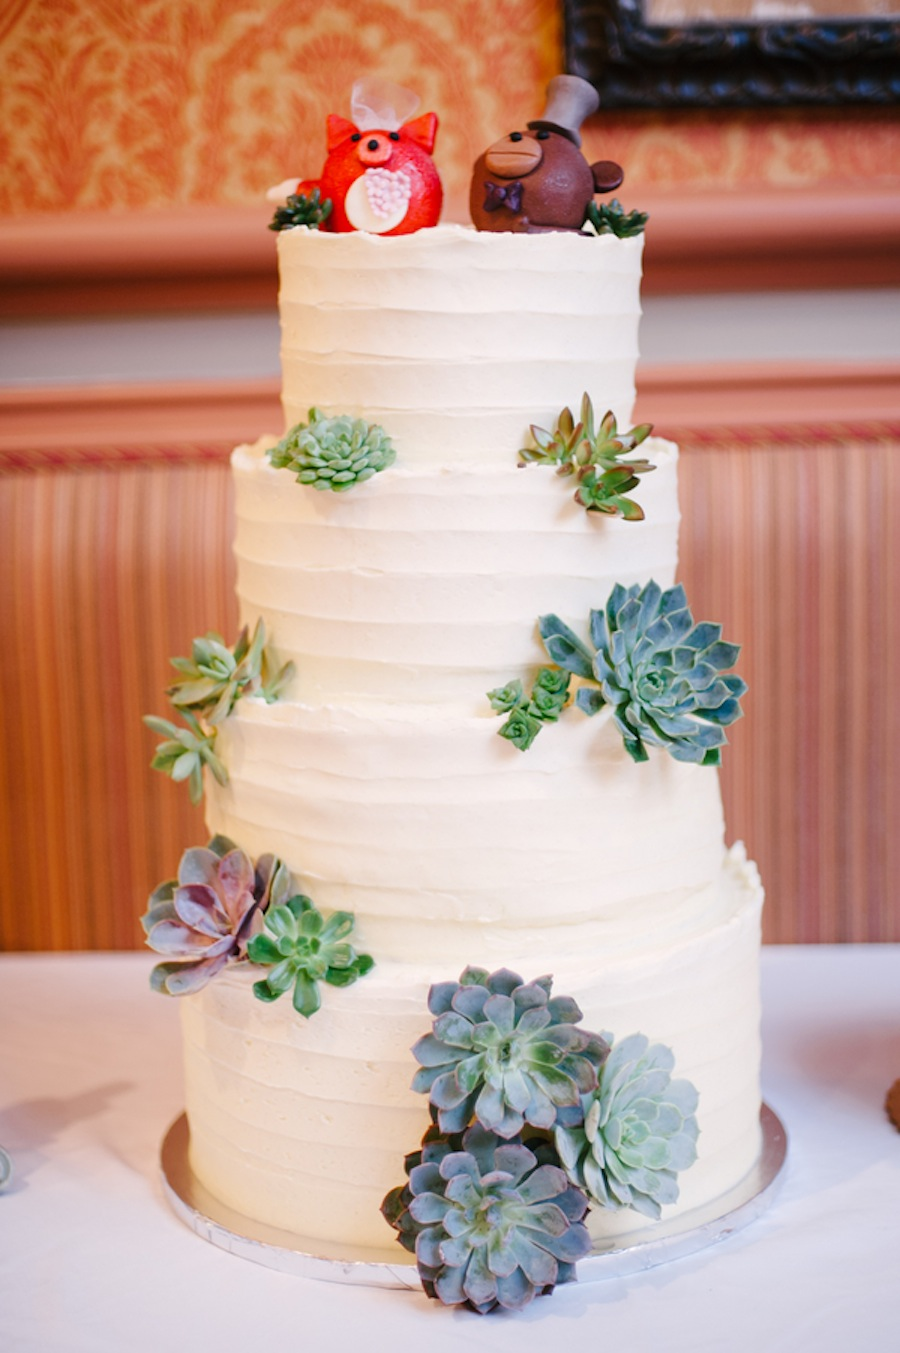 Vintage 4-Tier Wedding Cake with Succulents